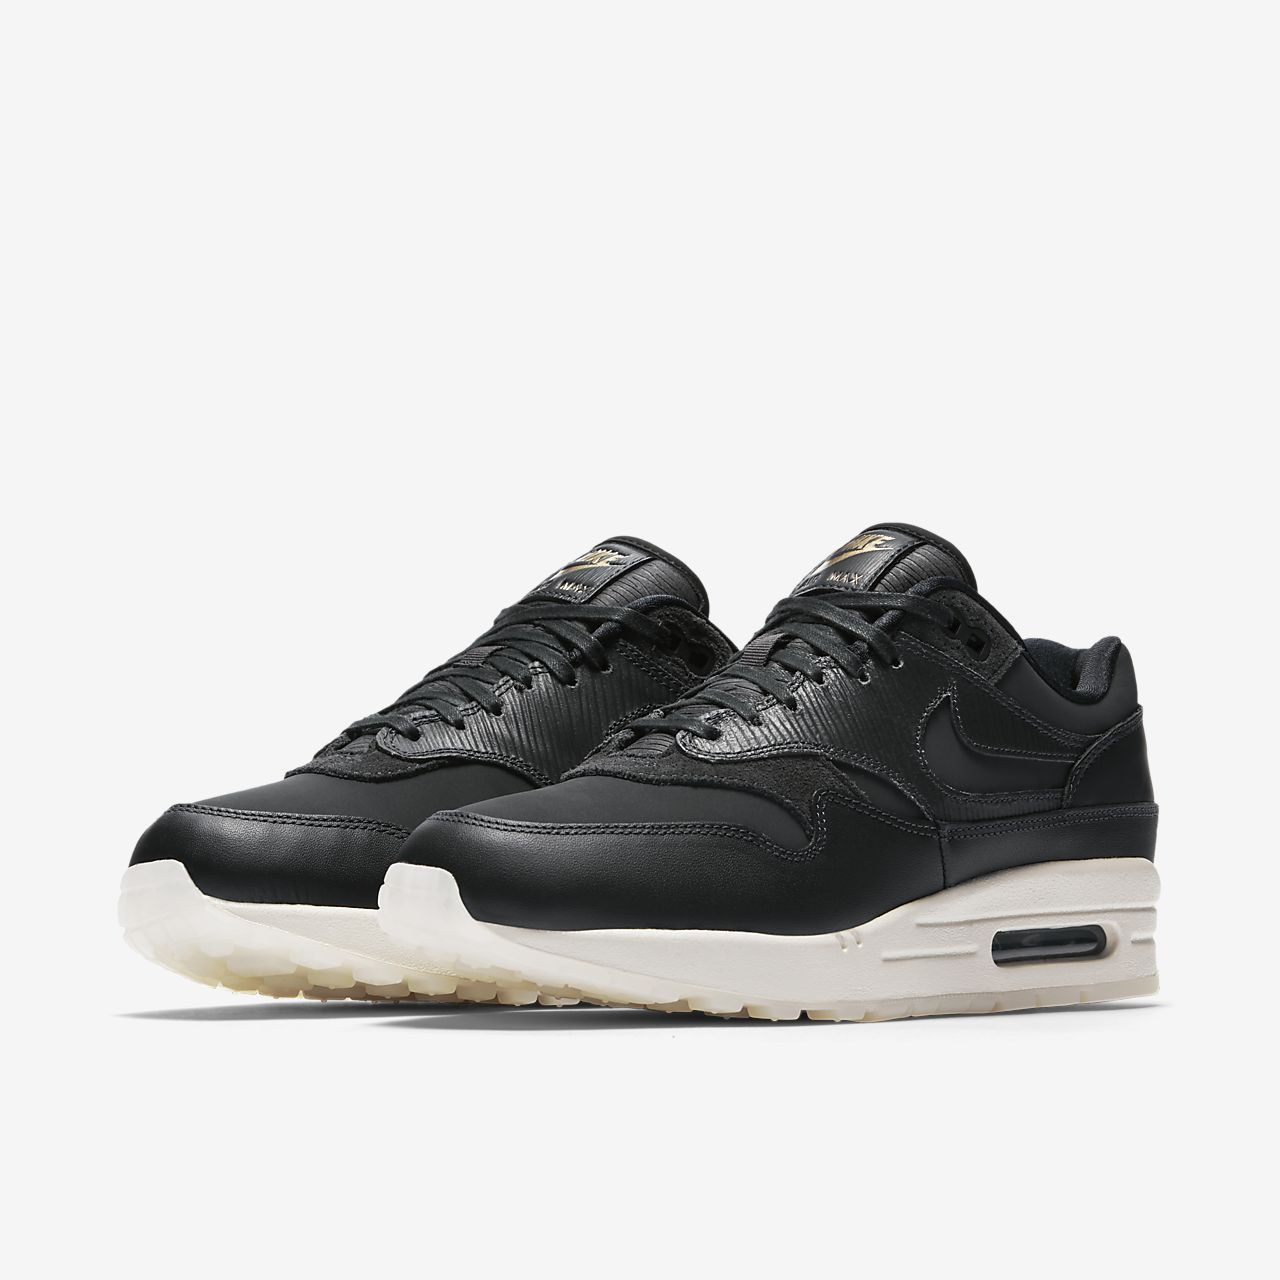 white air max 1 gum sole nz